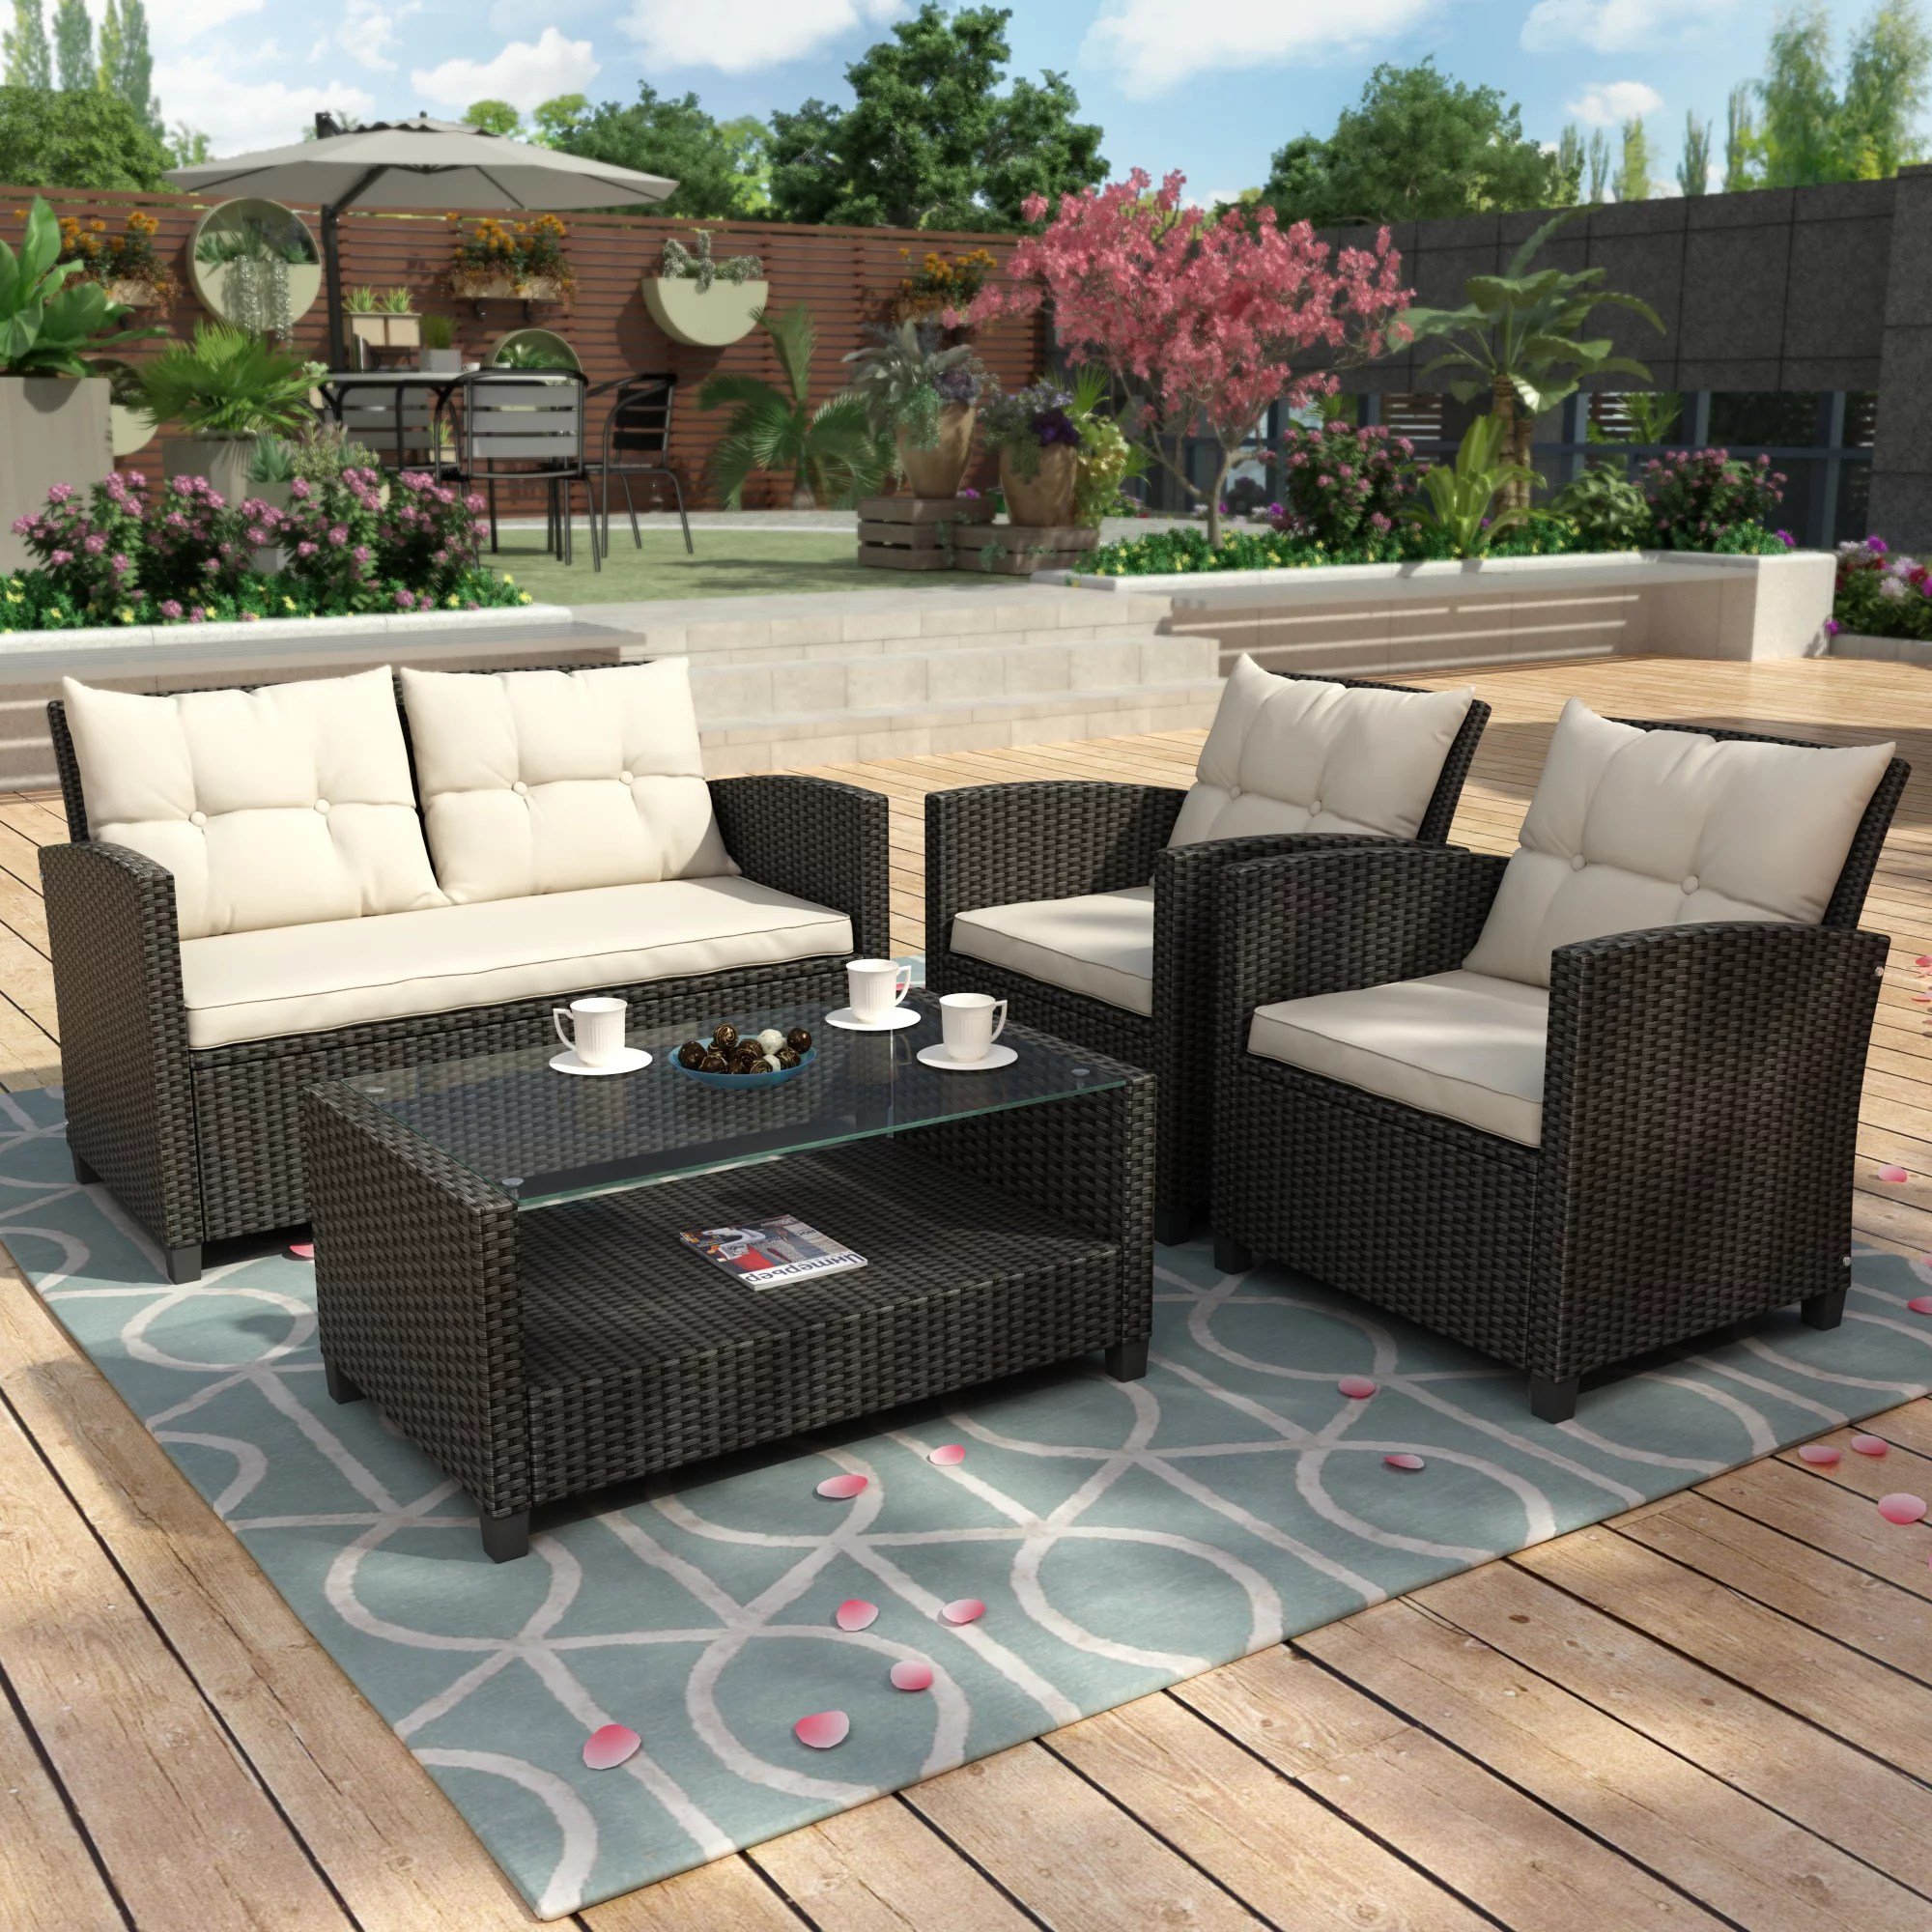 Clearance! Outdoor Wicker Sectional Sofa Set, 4 Piece ... on Outdoor Loveseat Sets  id=43543